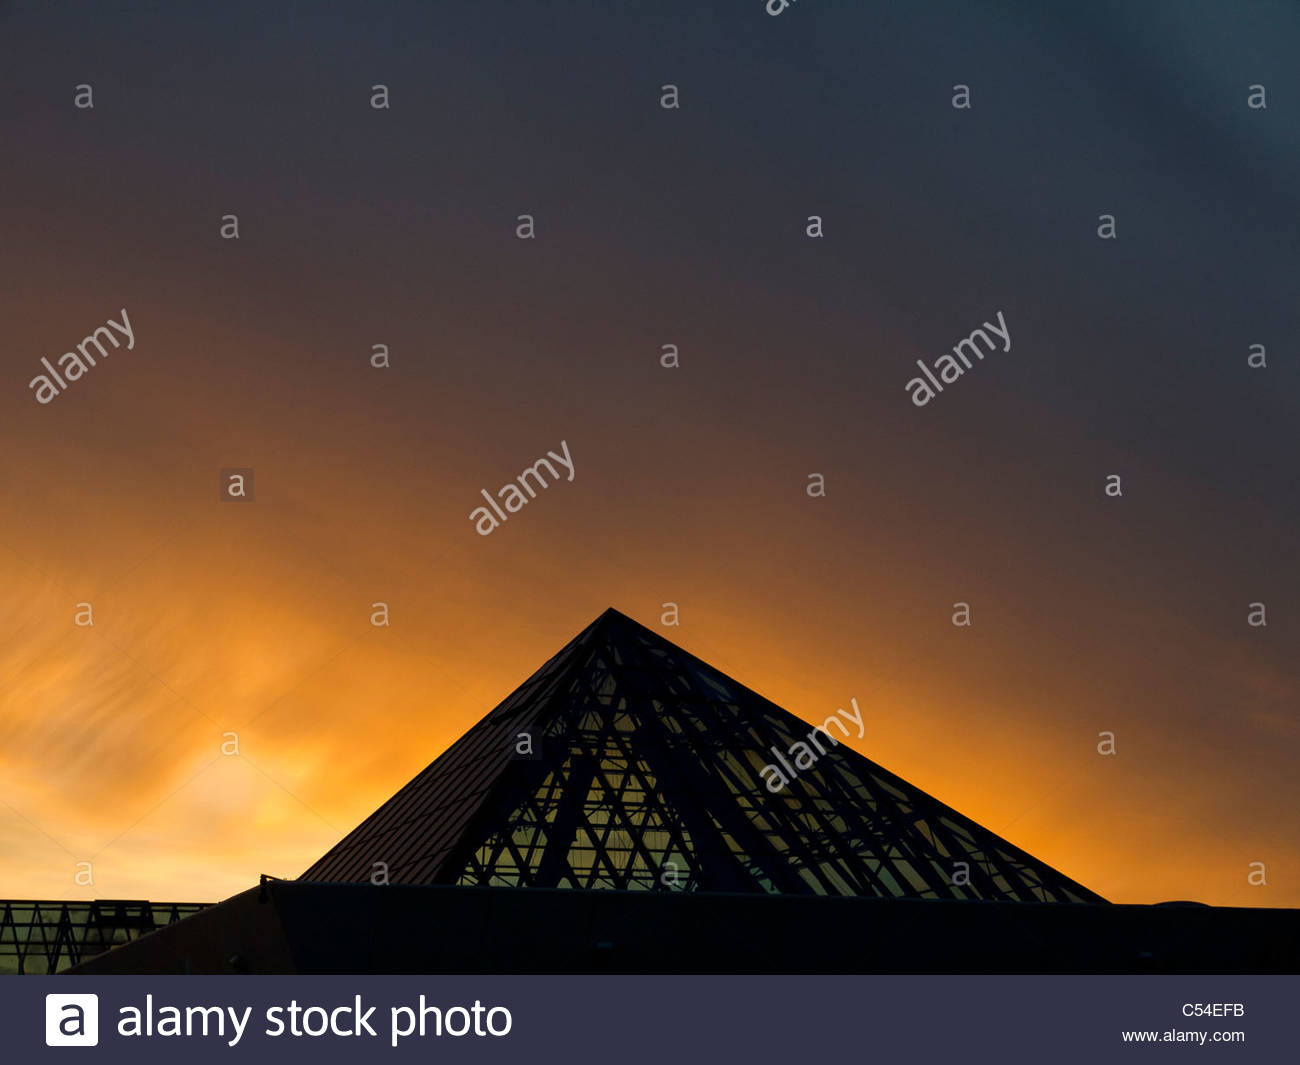 Portsmouth Southsea Pyramids Centre Sunset - Stock Image